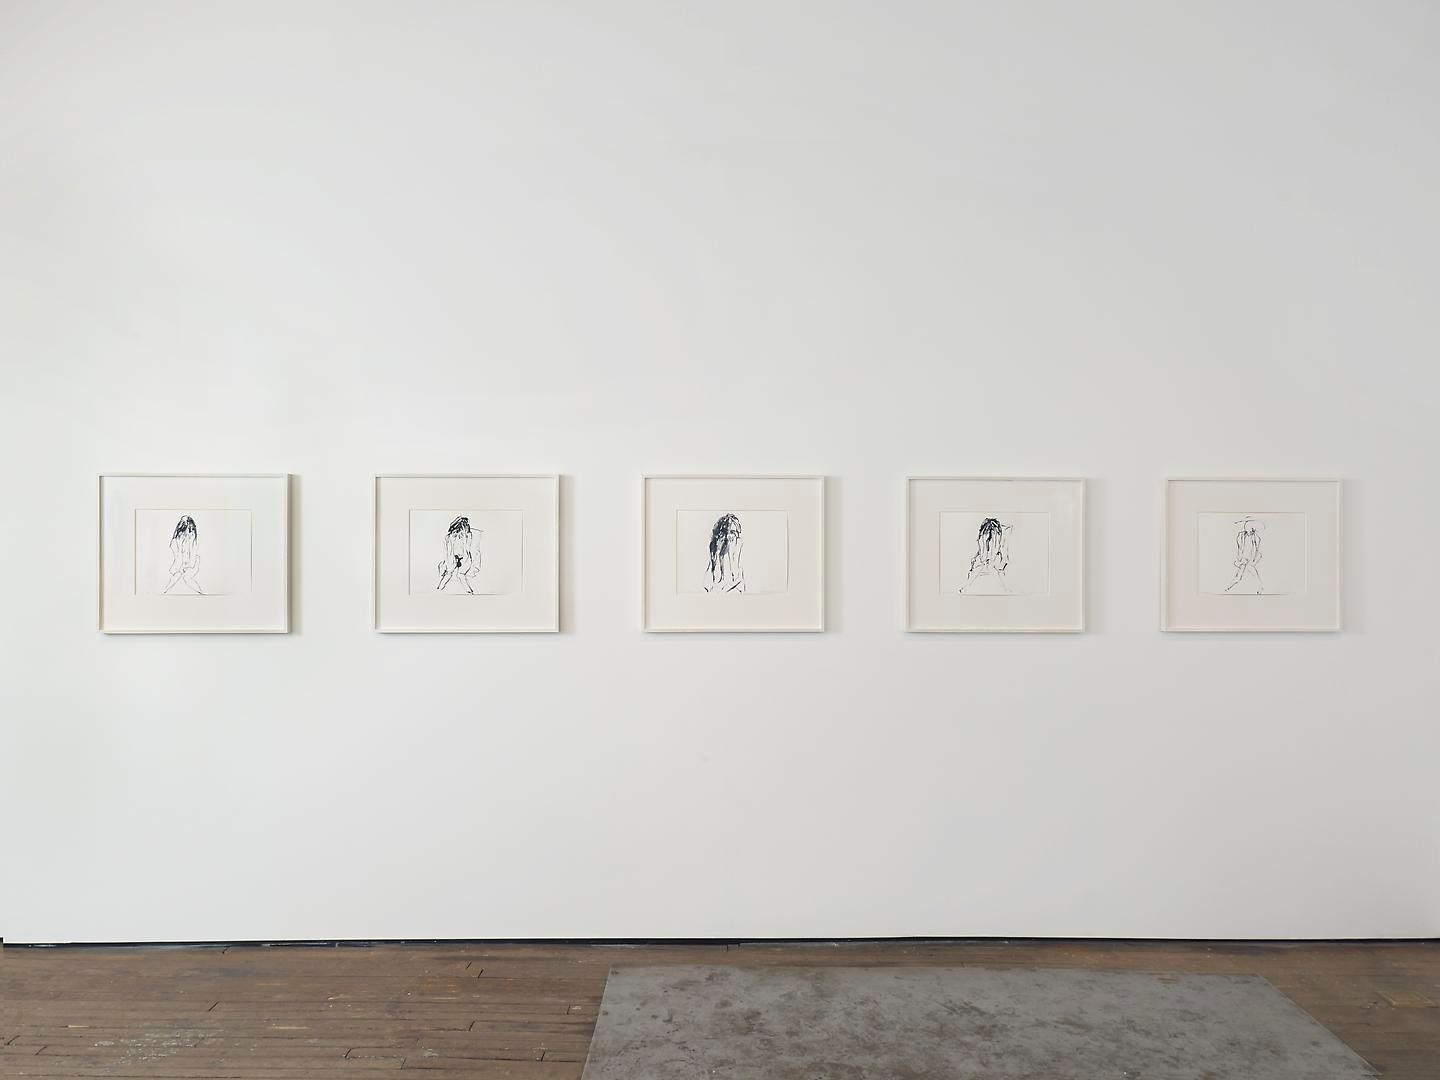 Tracey Emin: I Followed You To The Sun Installation view 5